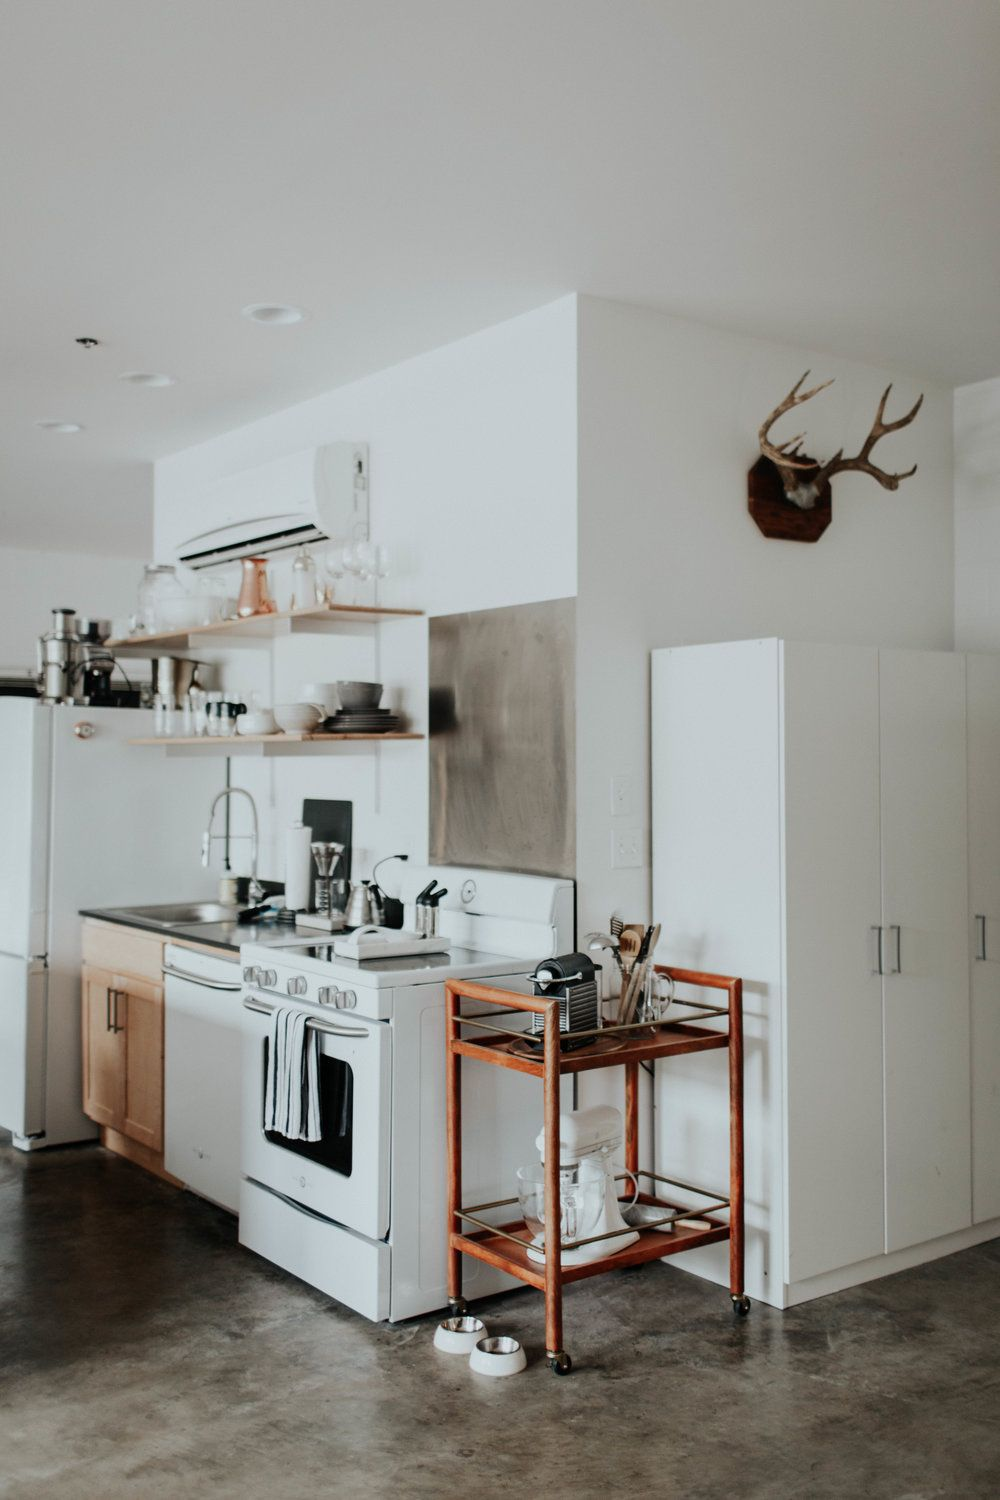 ideas for kitchen cabinets abby roses gt gt home tour dwell kitchens 18648